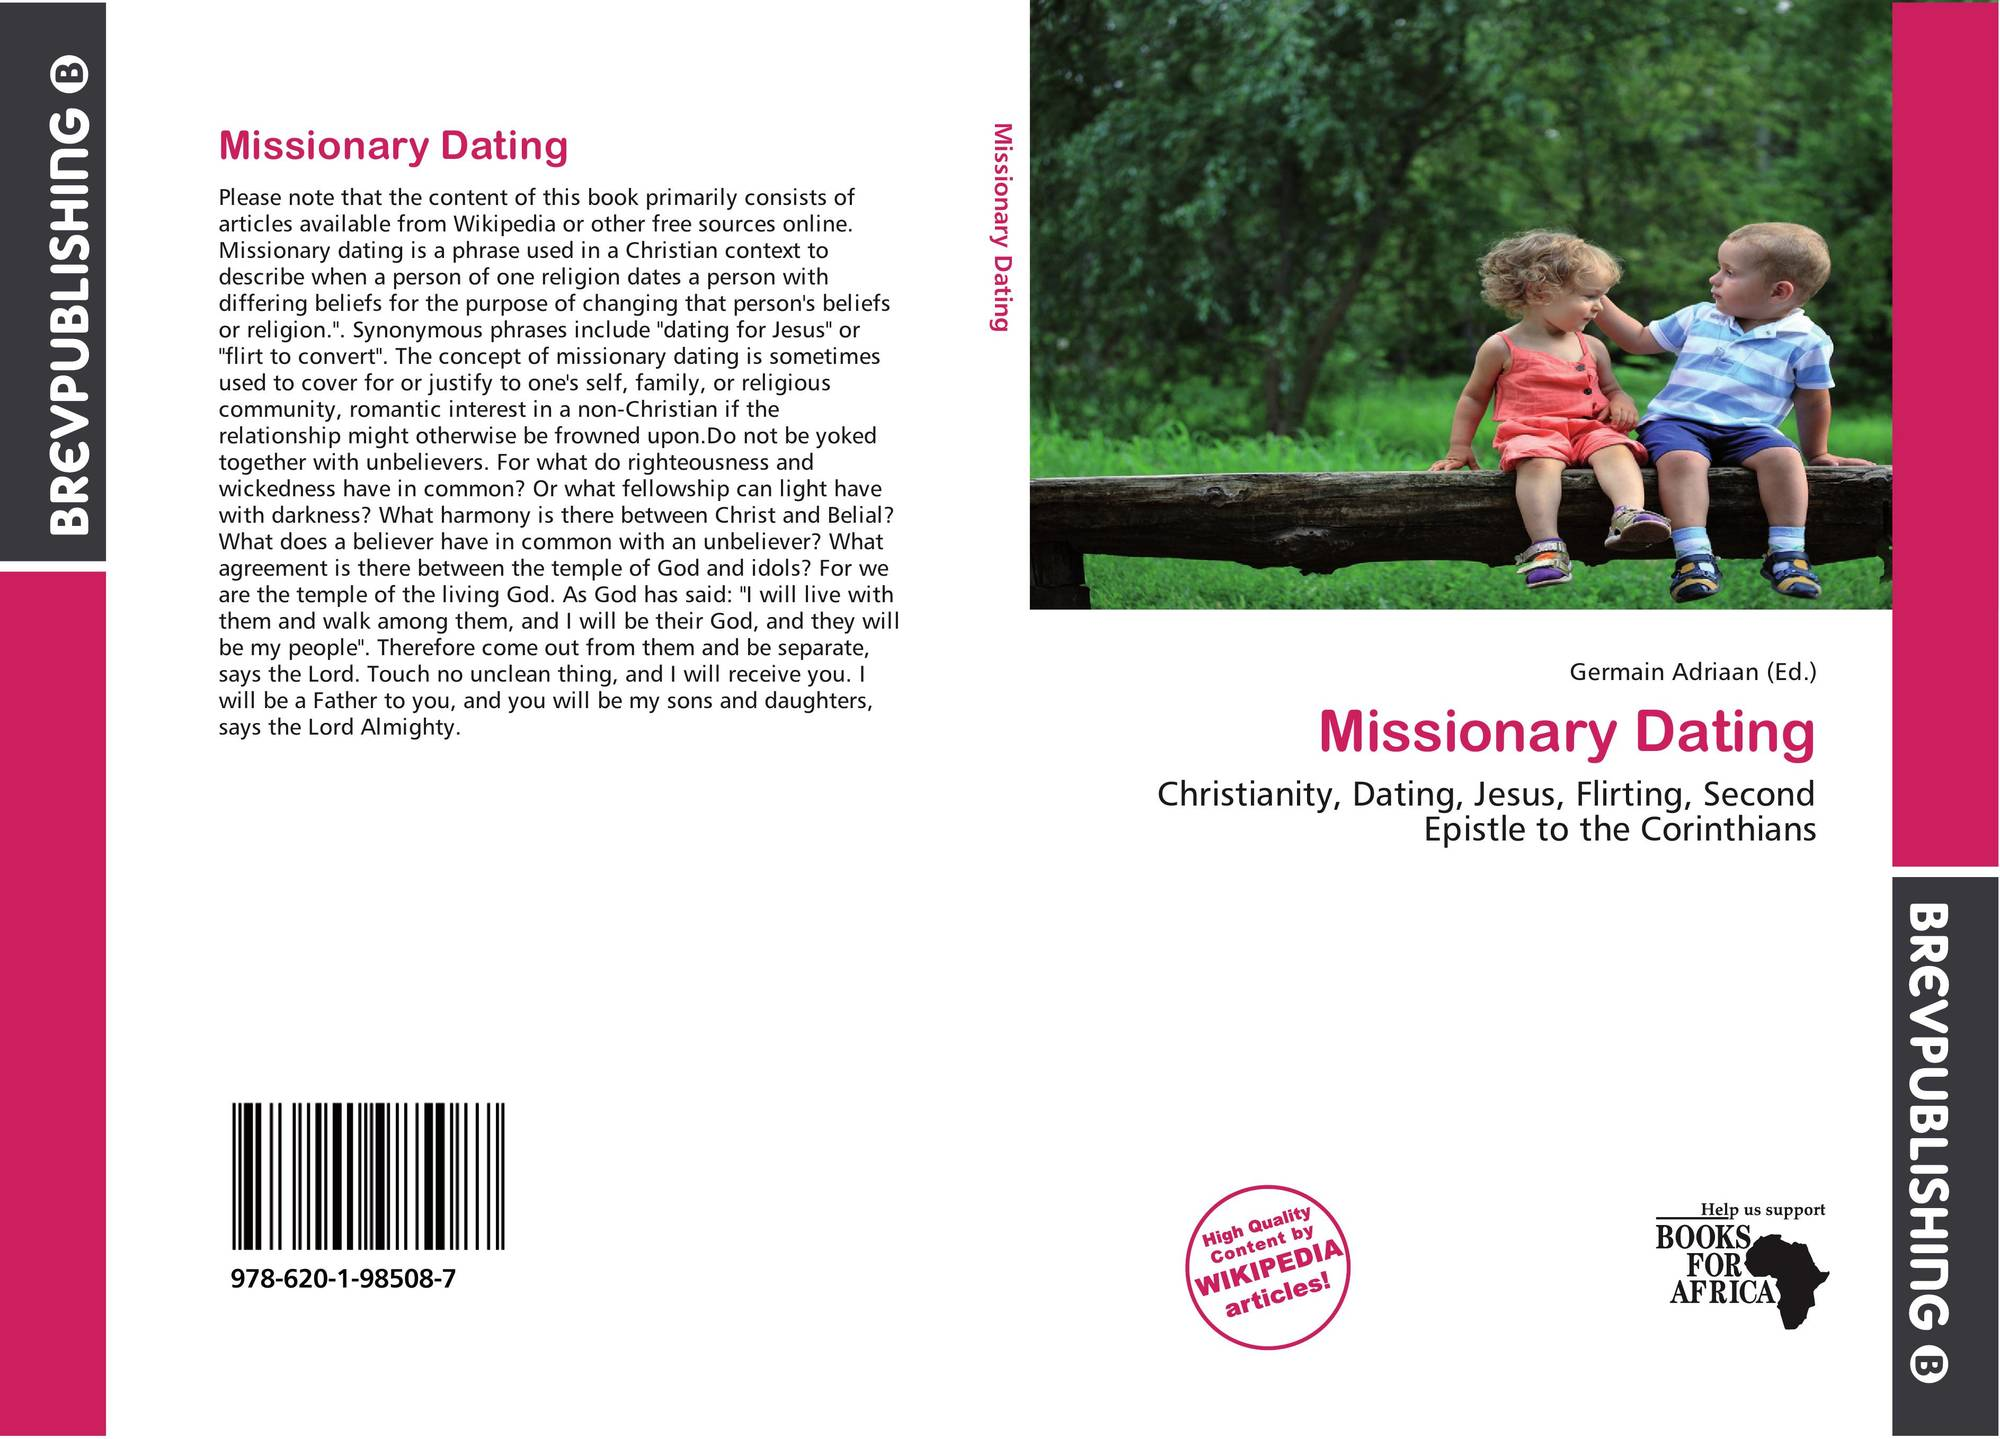 radiocarbon dating and christianity